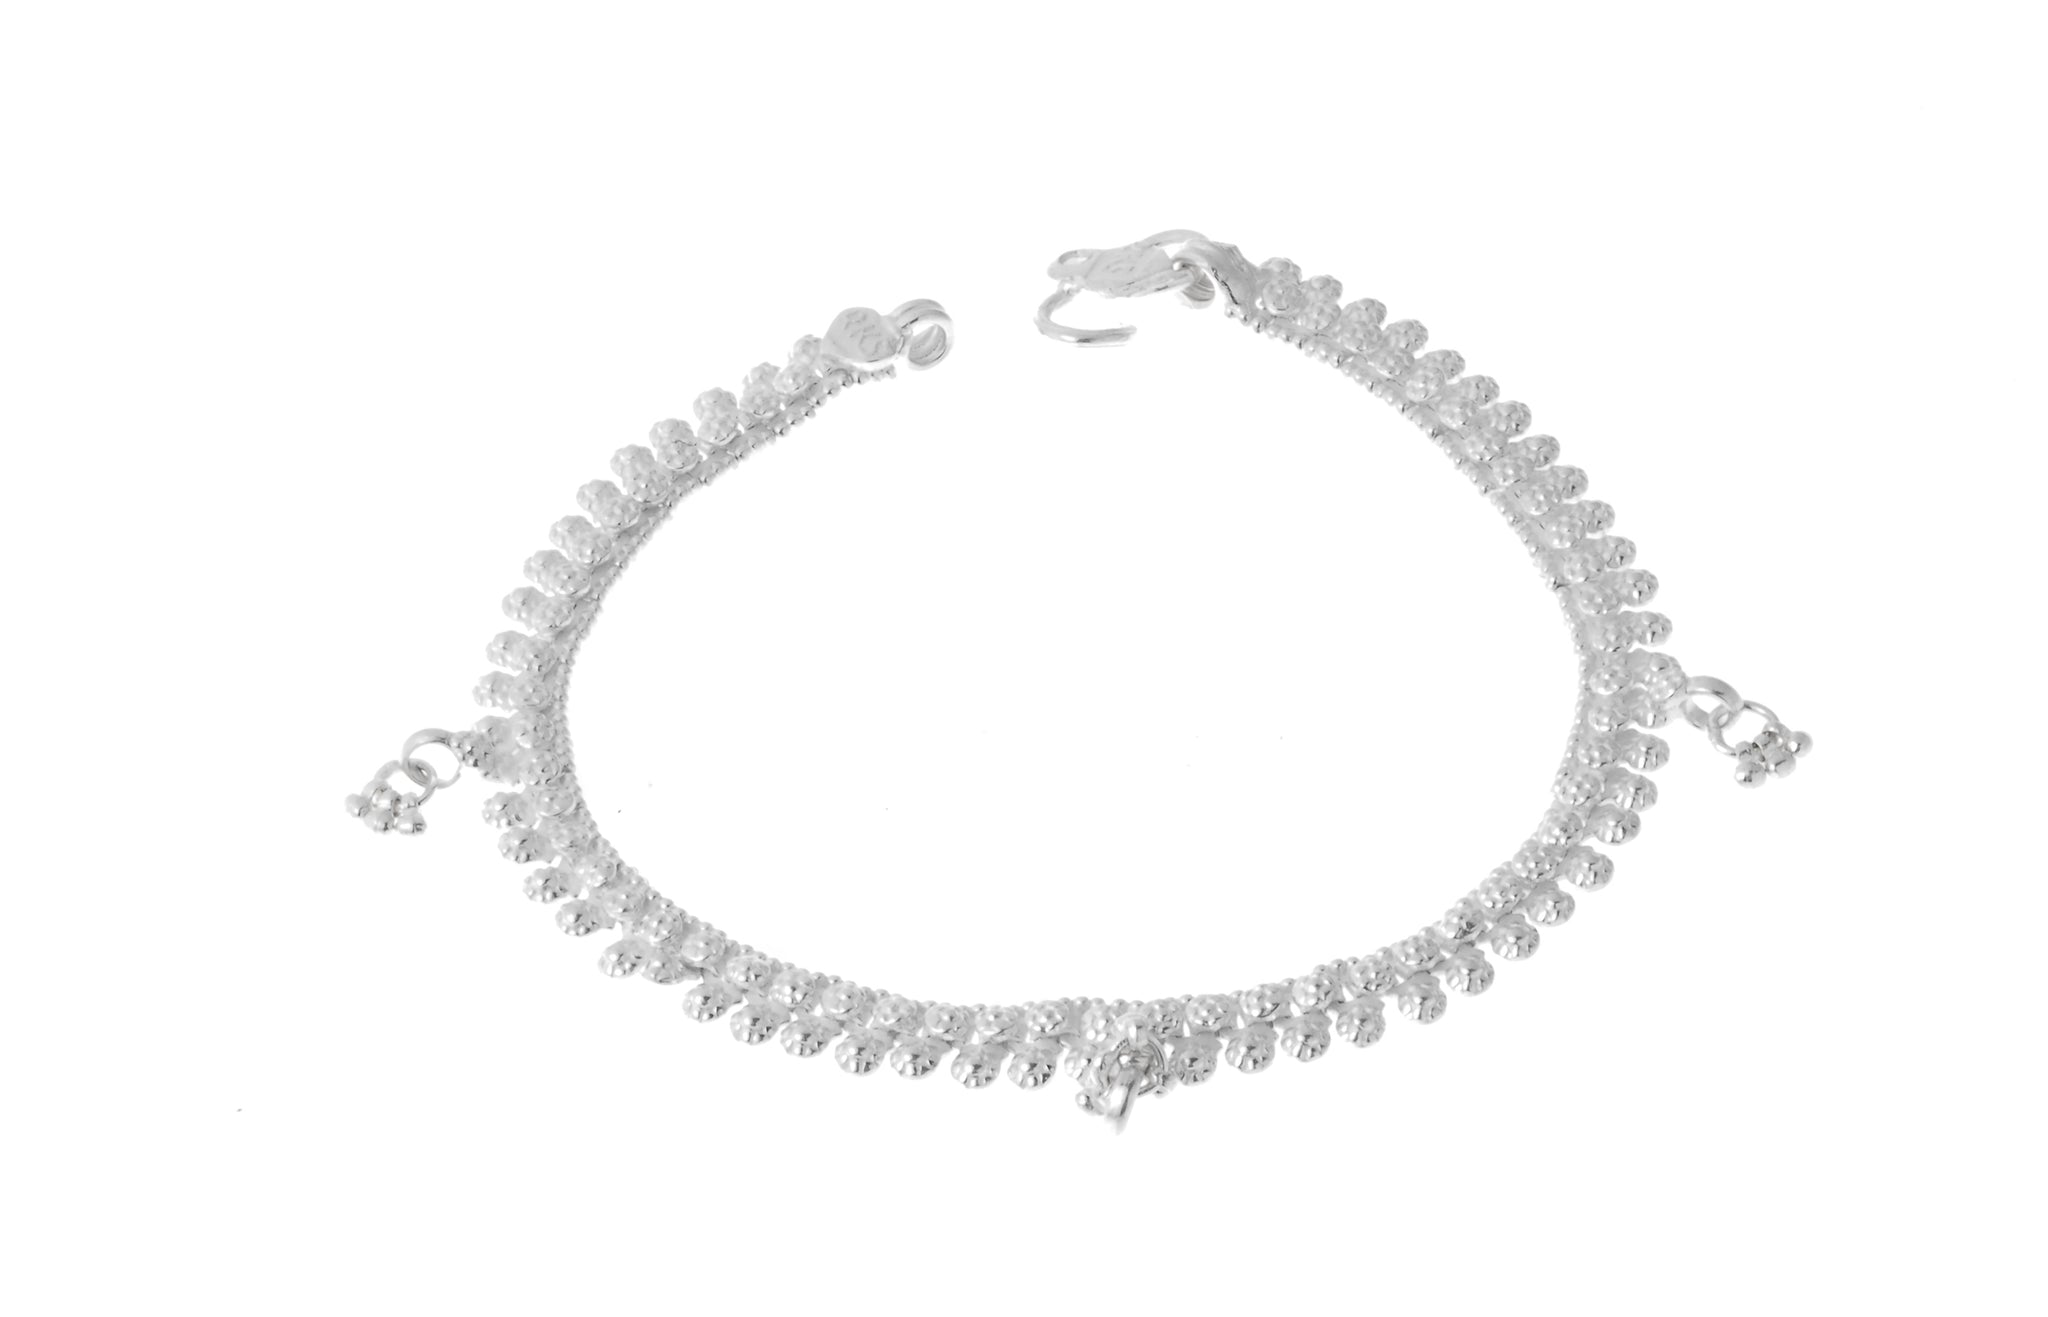 Sterling Silver Anklets with Ghughri Bell Charms for Children (A-7151) - Single